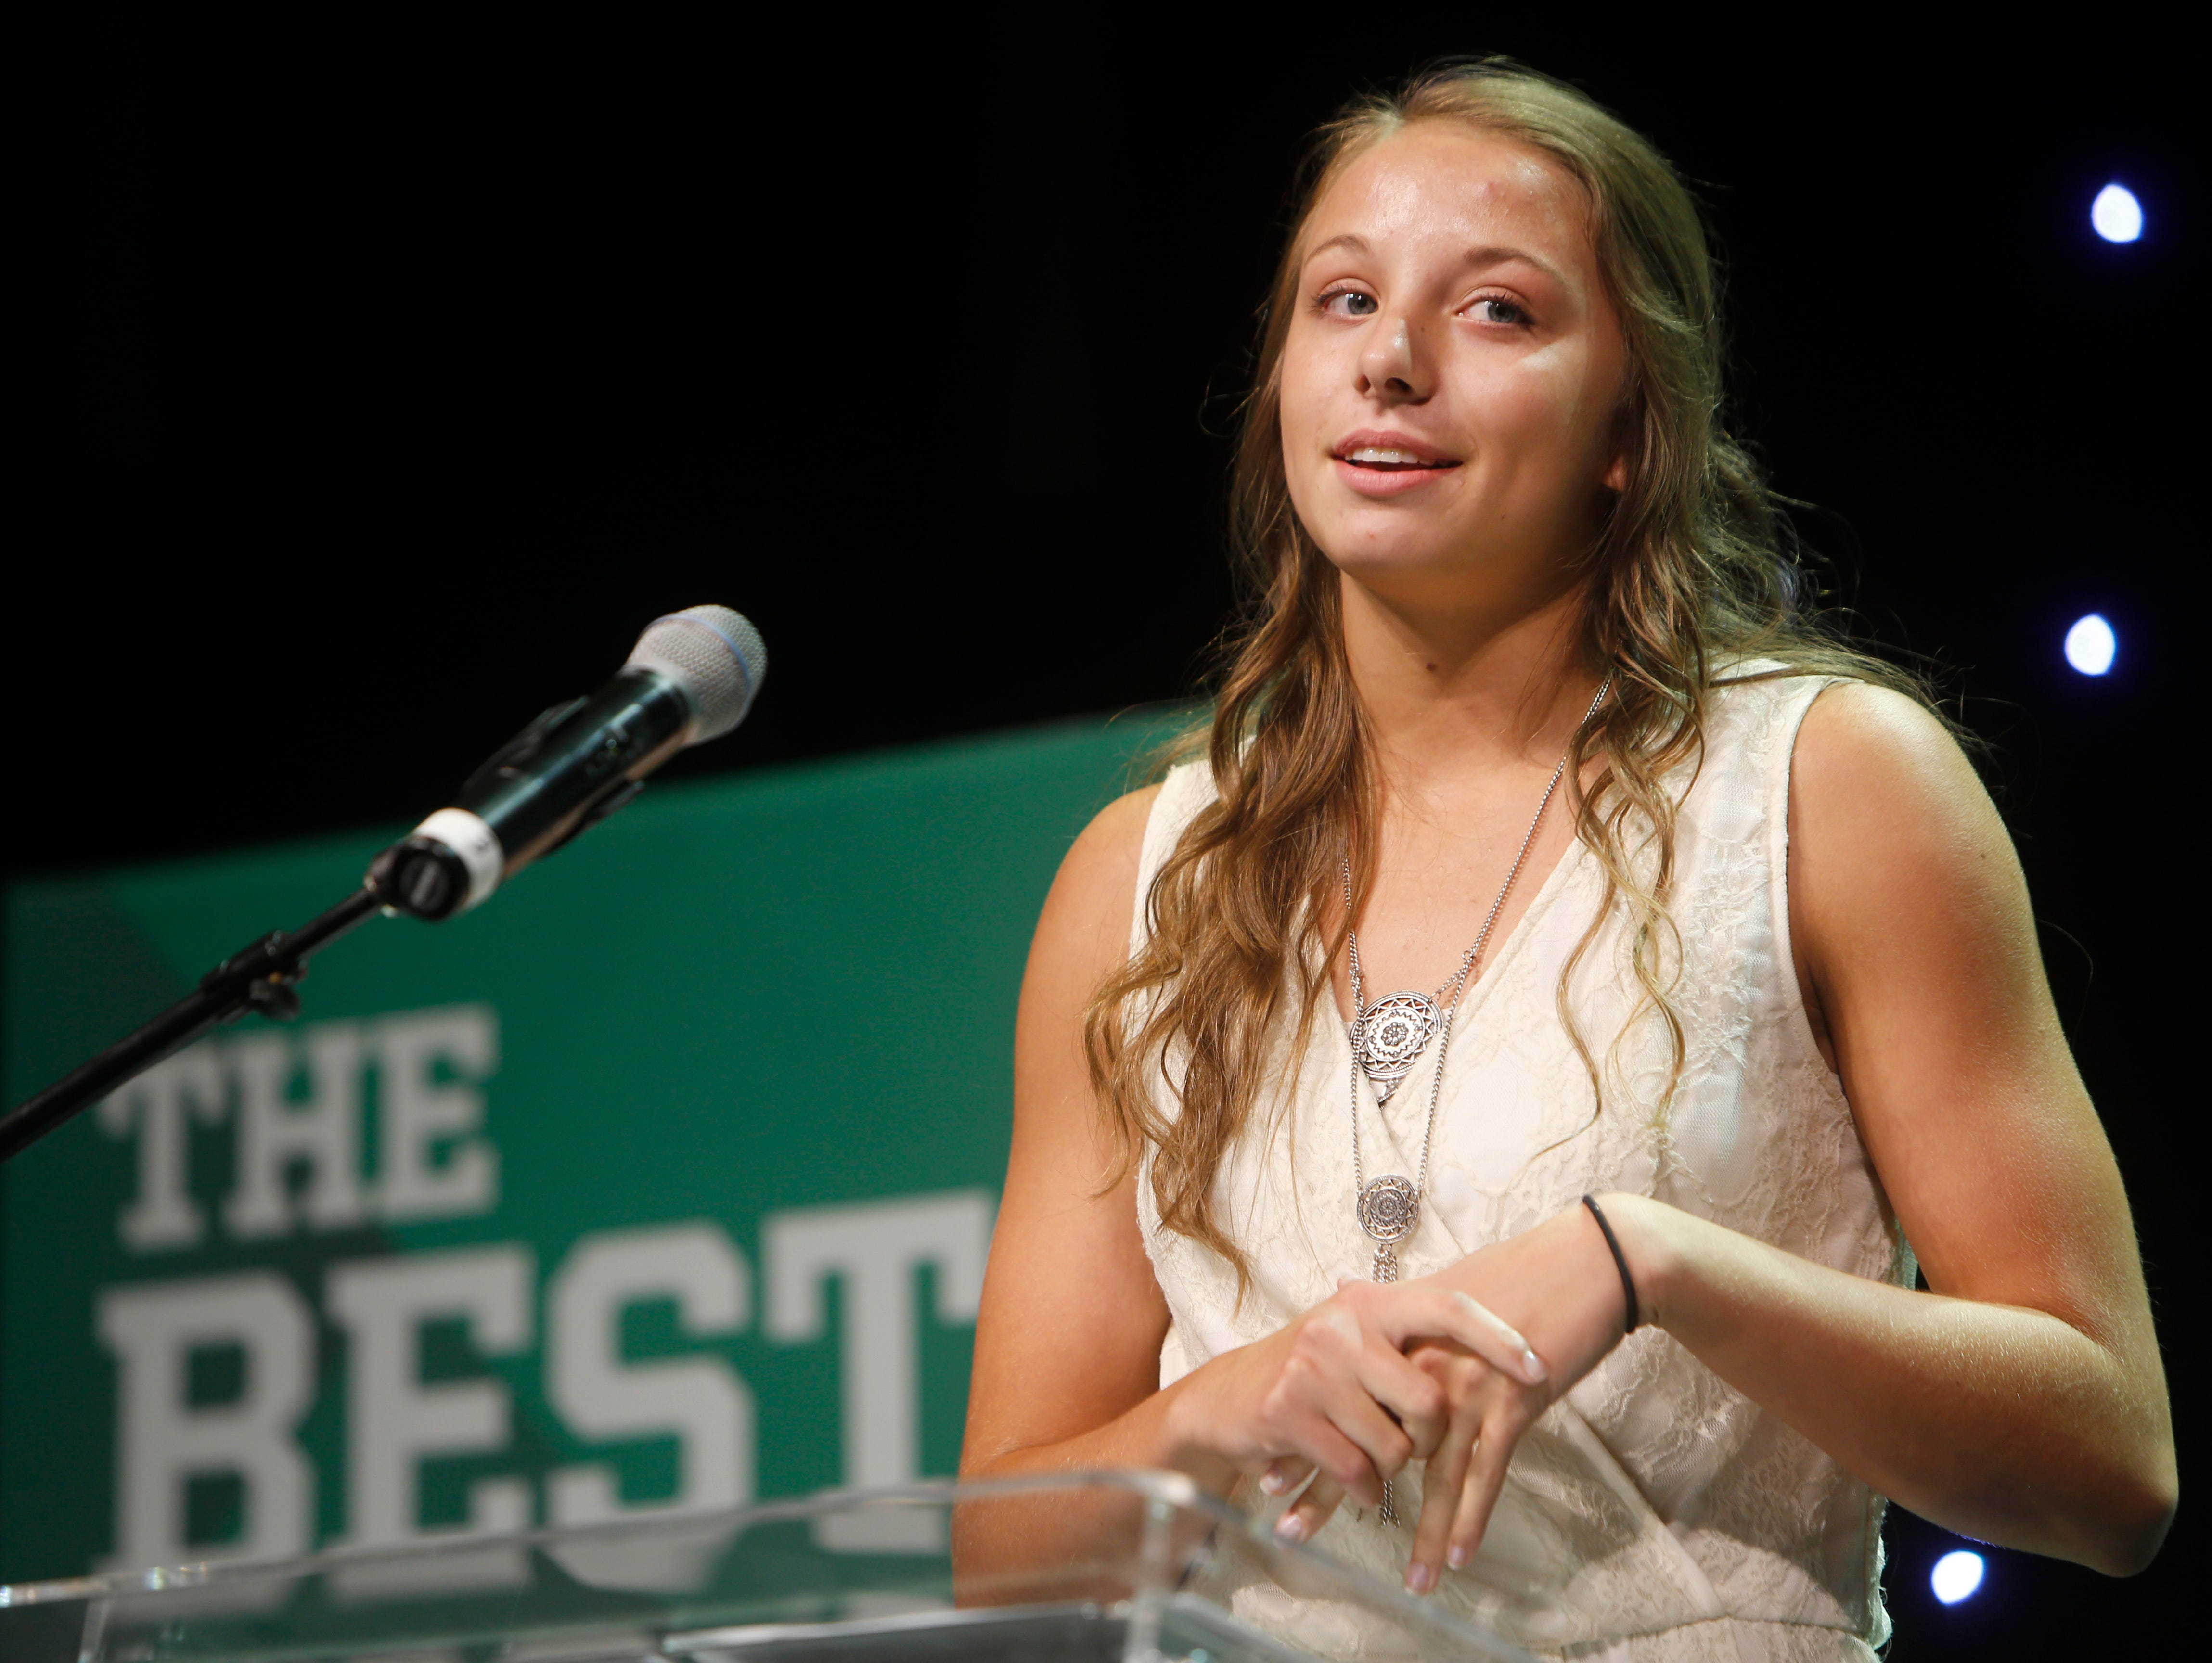 Brooke Stanfield was named the female athlete of the year during the 2016 Southwest Missouri Sports Awards at the Springfield Expo Center on Thursday, June 9, 2016.